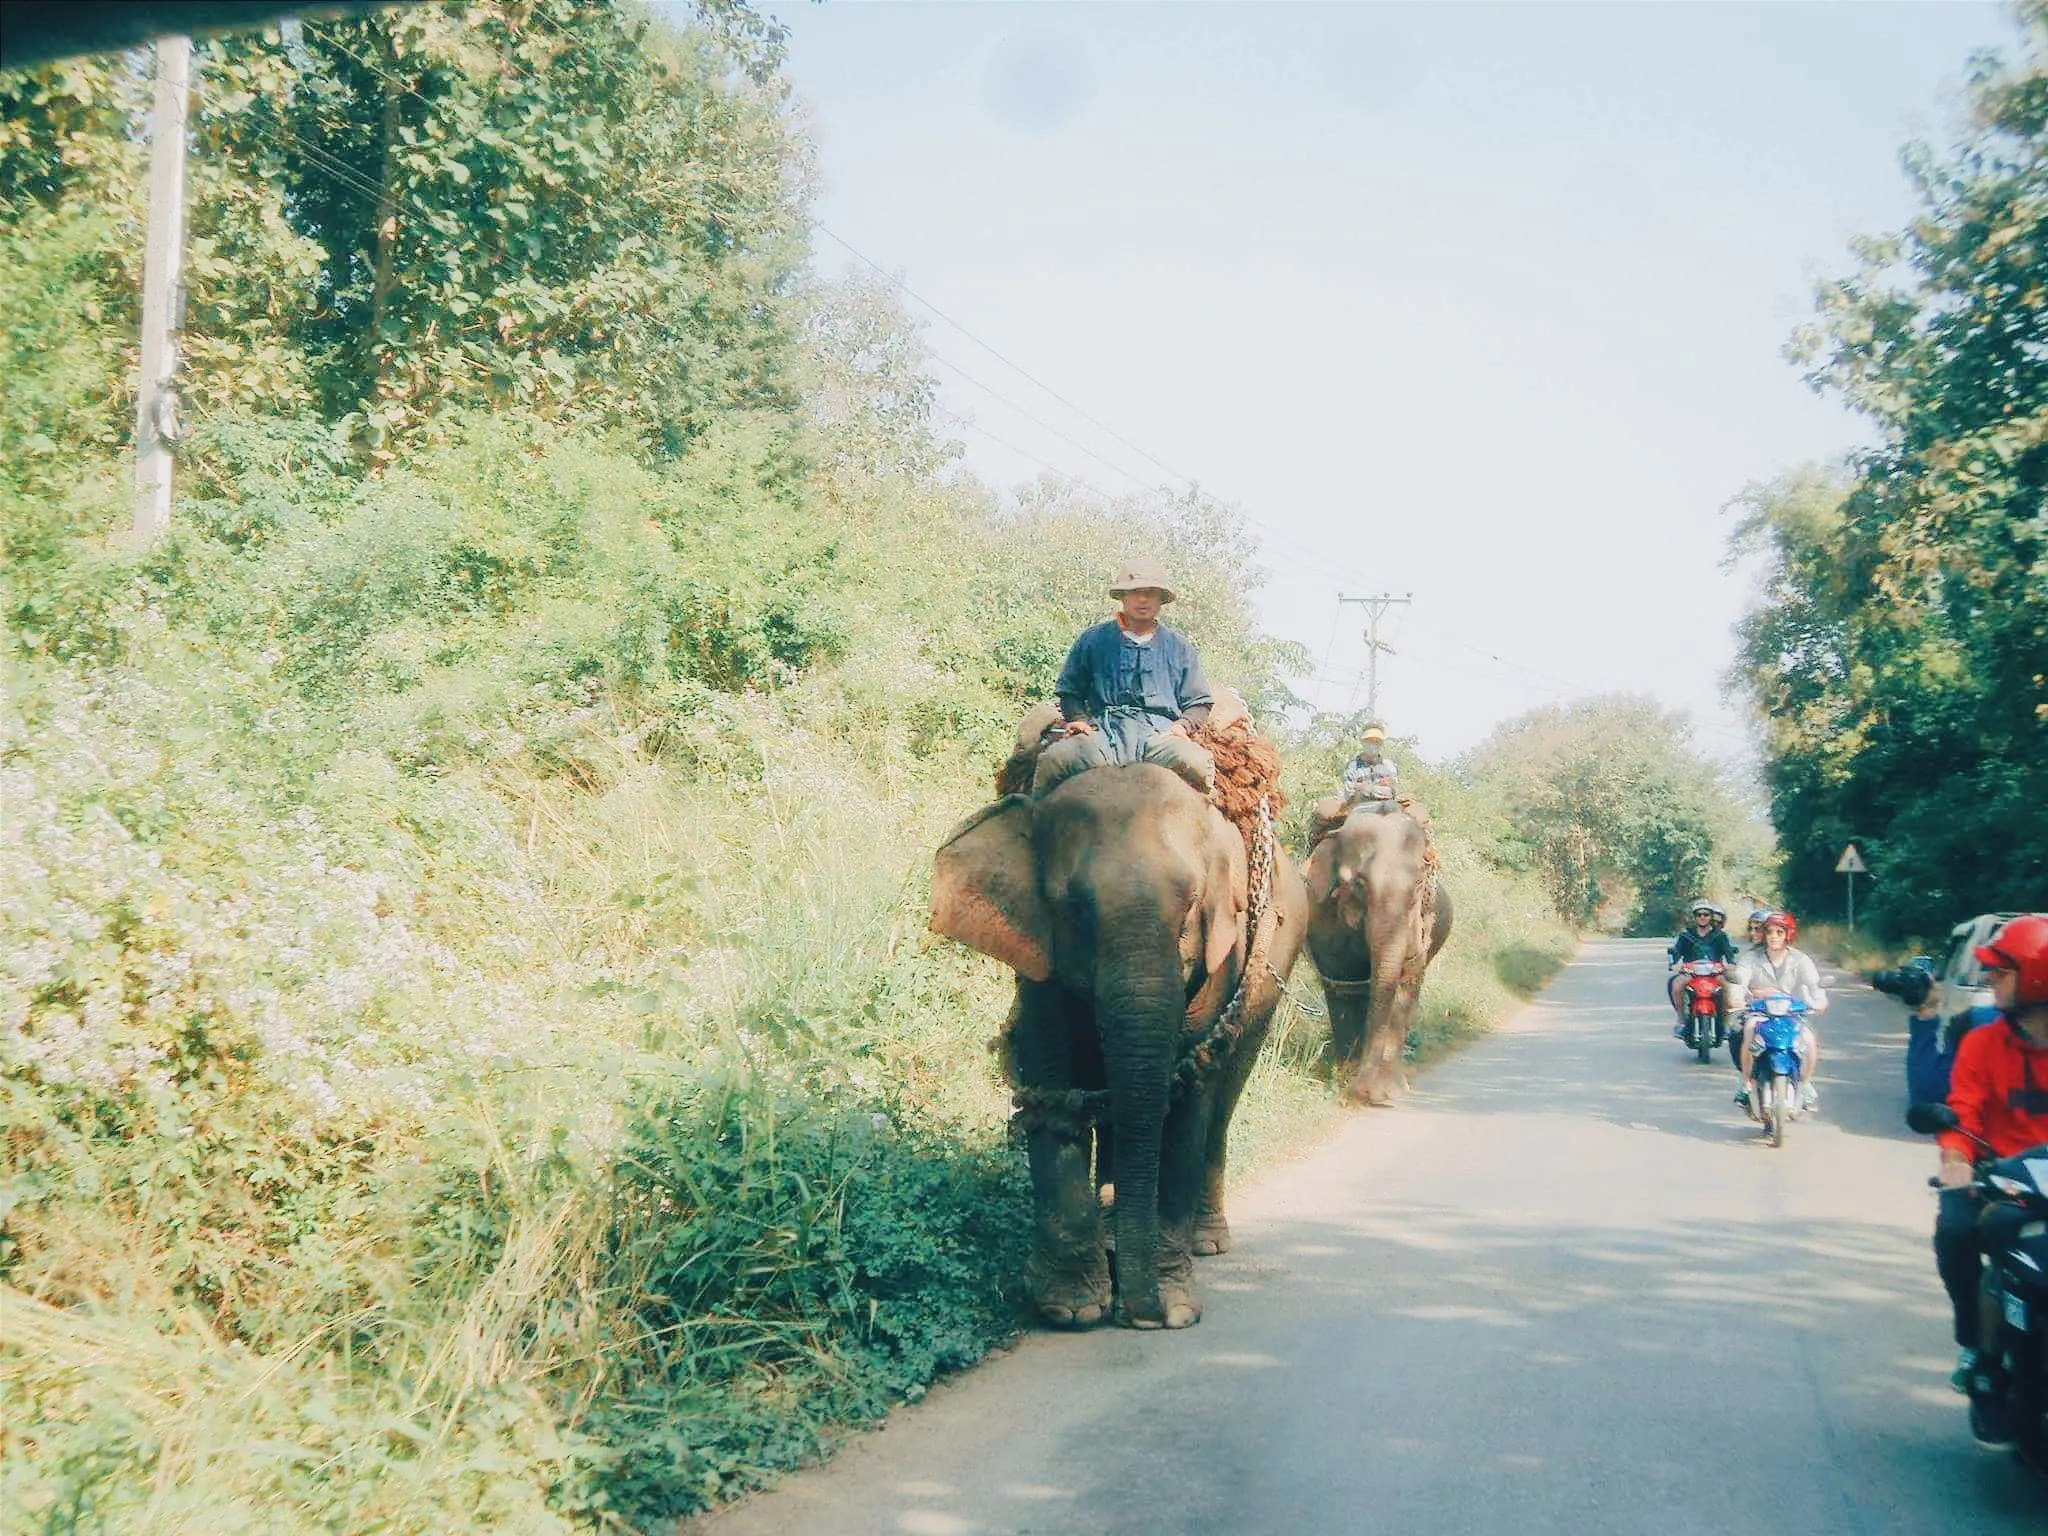 Riding an elephant backpacking in Laos.